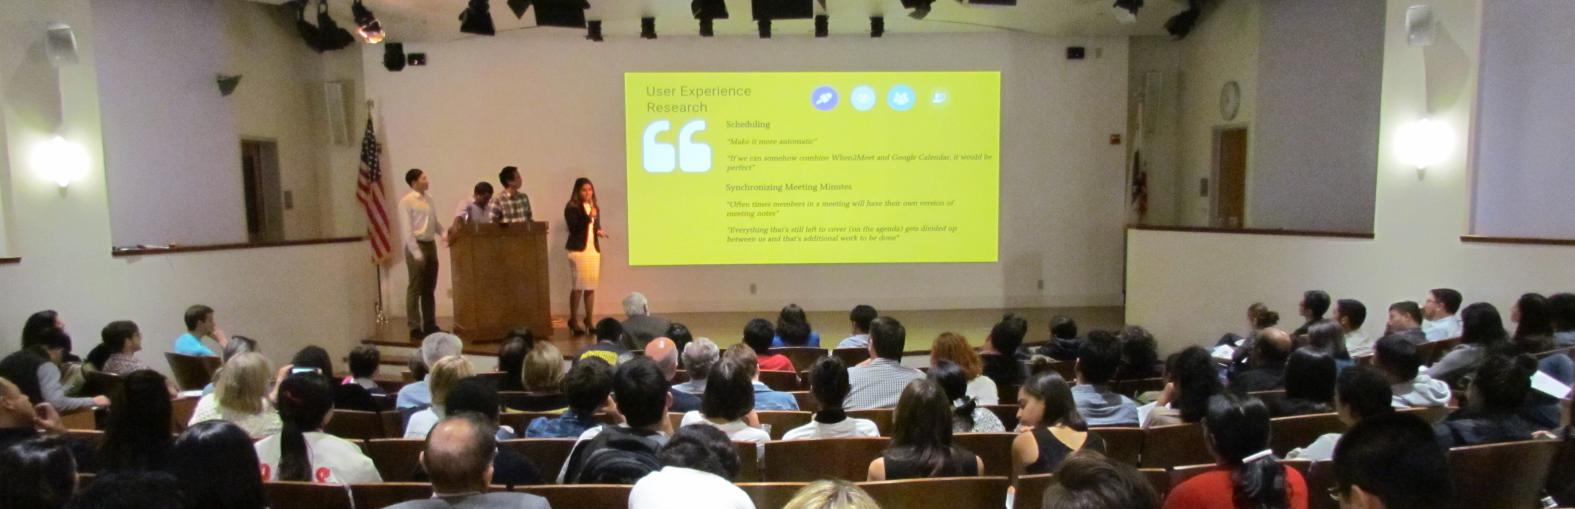 mims-project-showcase-2017.jpg